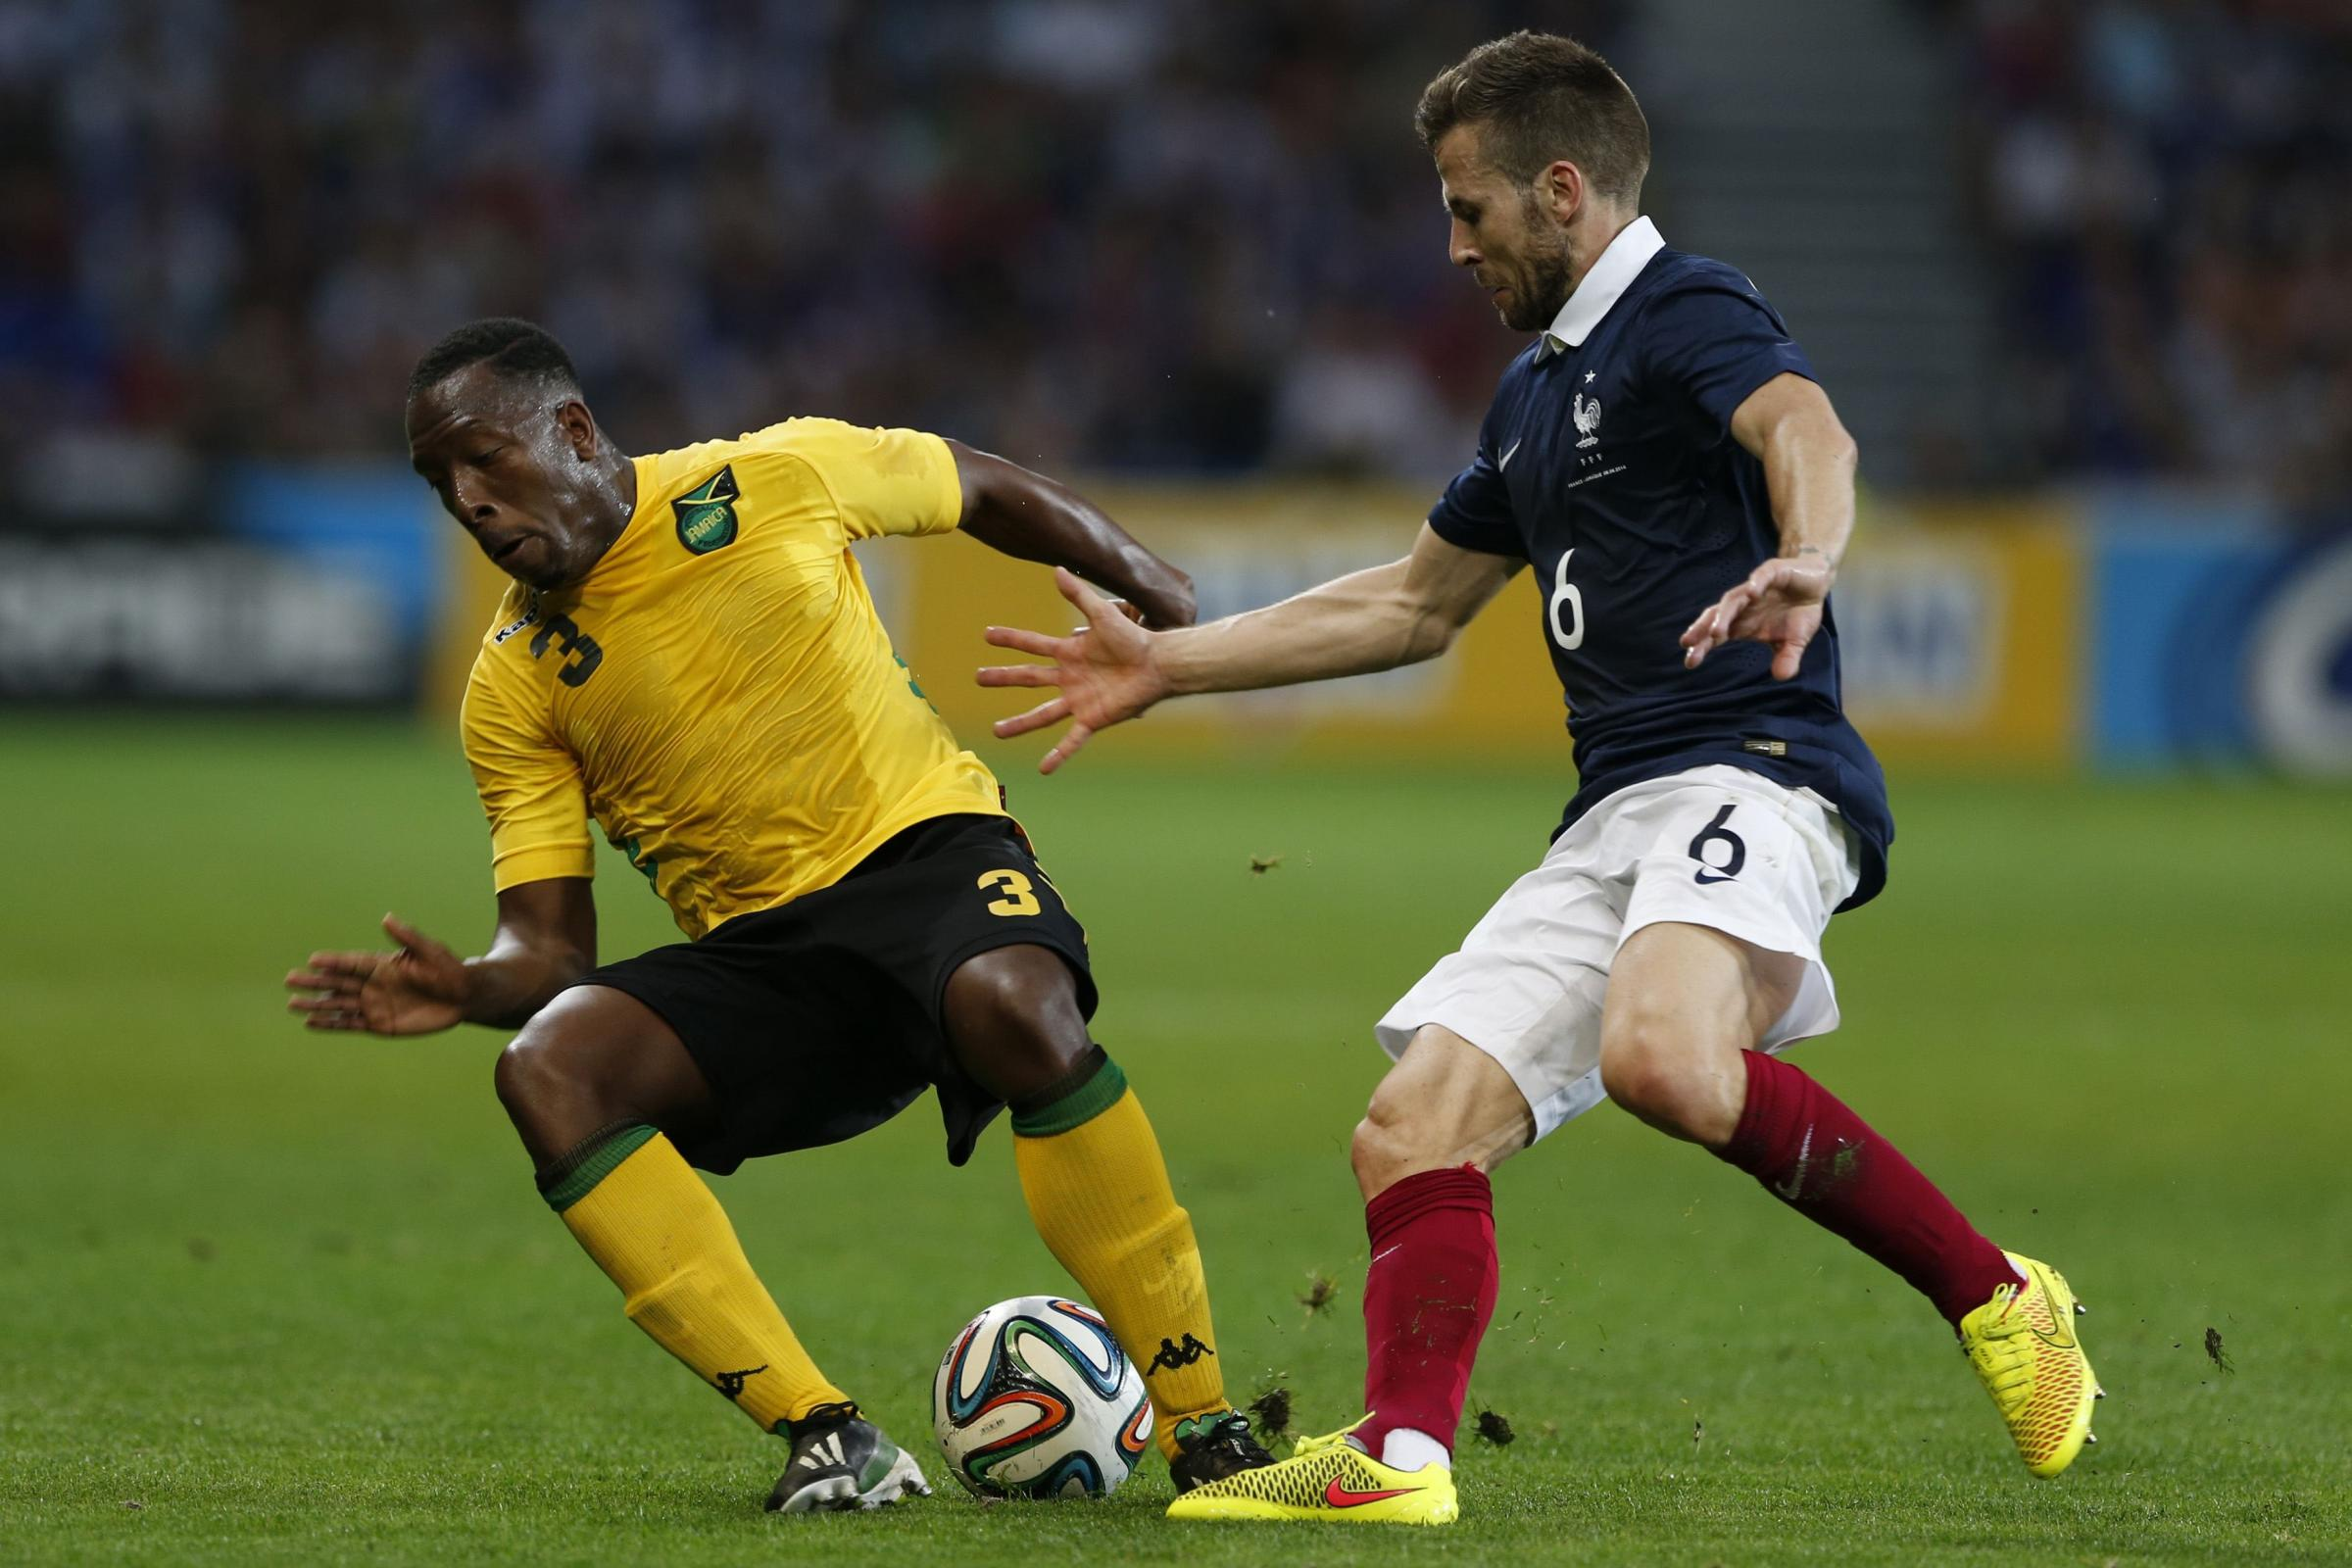 Lloyd Doyley does battle with PSG midfielder Yohan Cabaye. Picture: Action Images